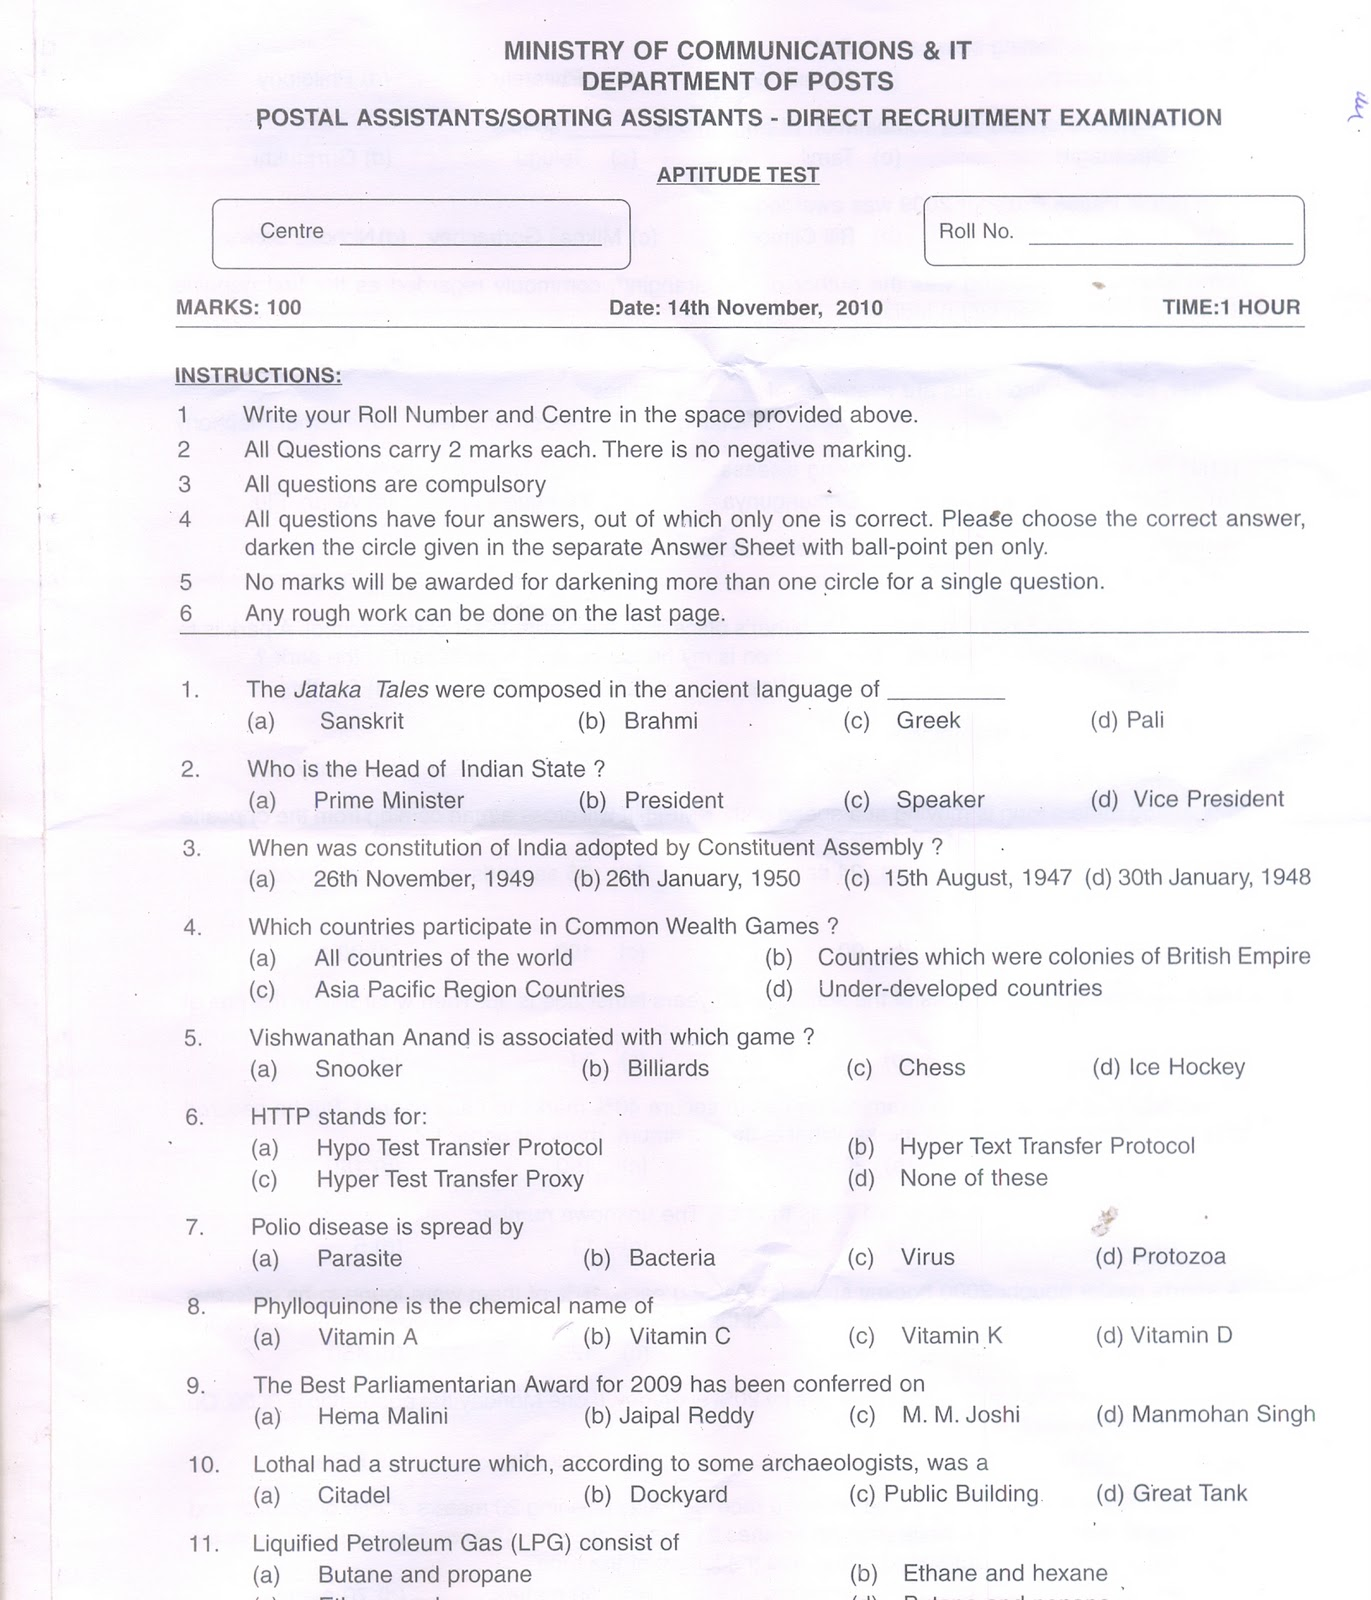 cpc exam questions and answers pdf 2016